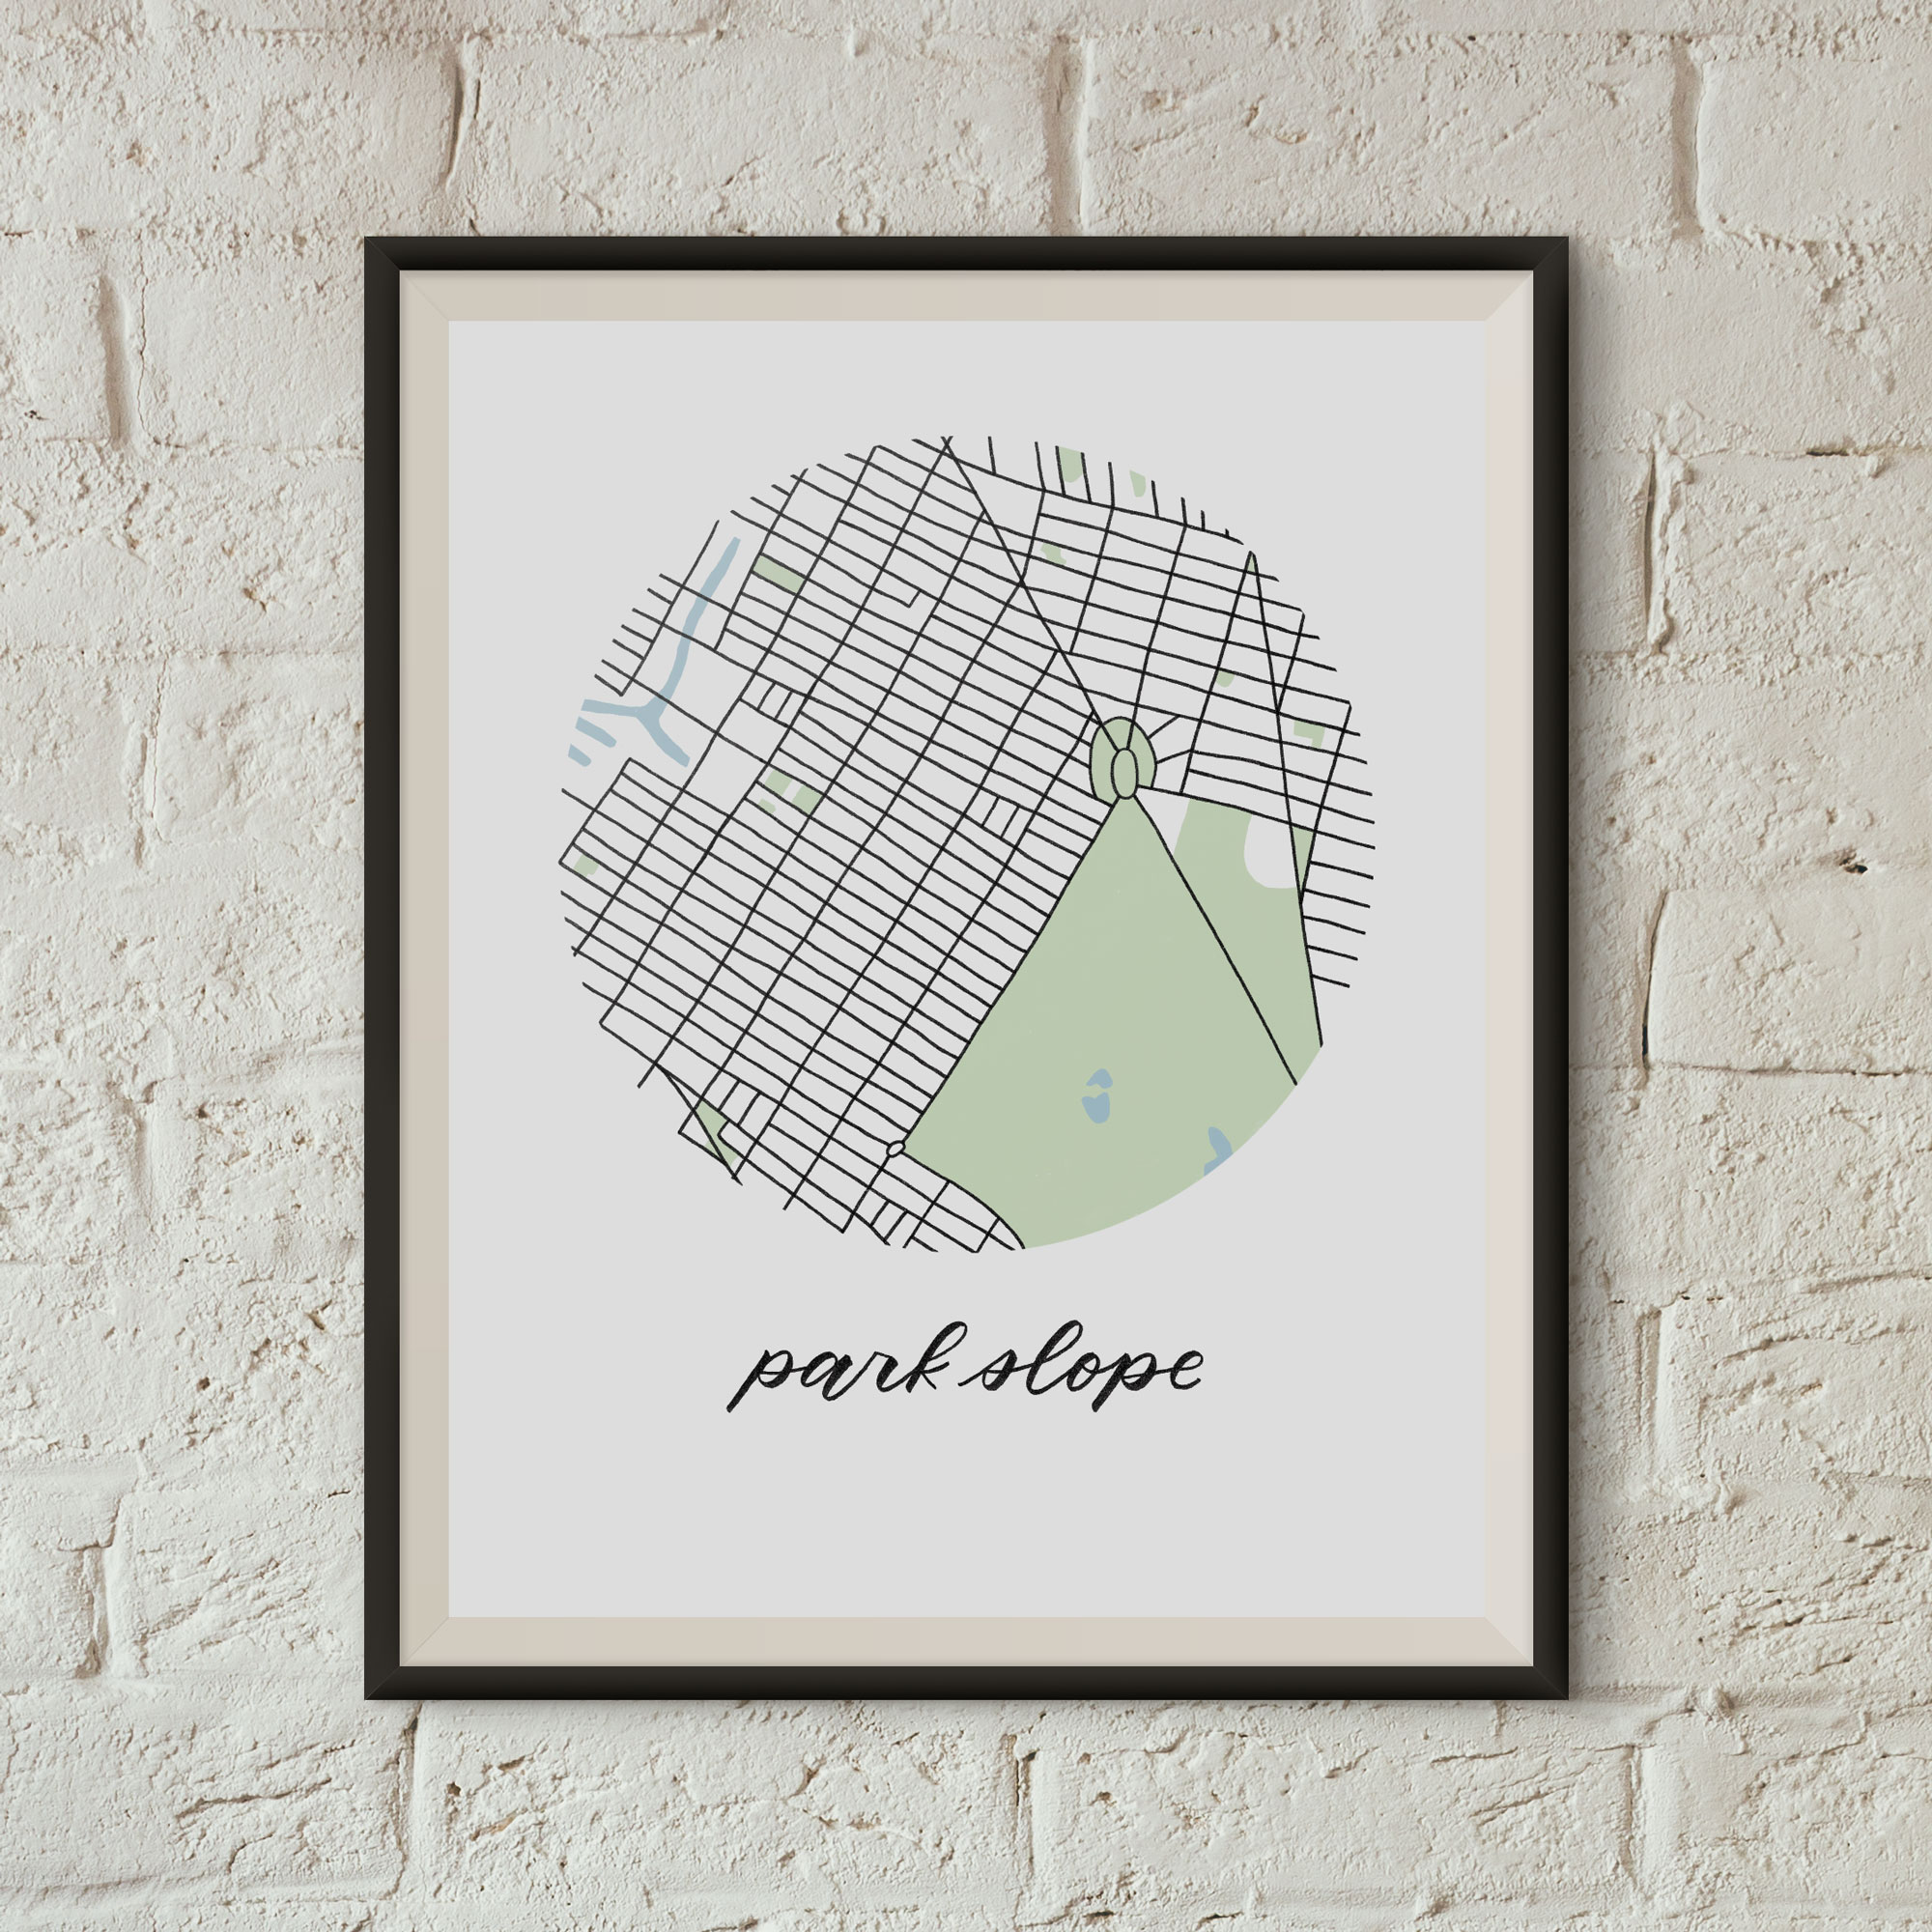 Park Slope, Brooklyn Map Print framed on a white brick wall